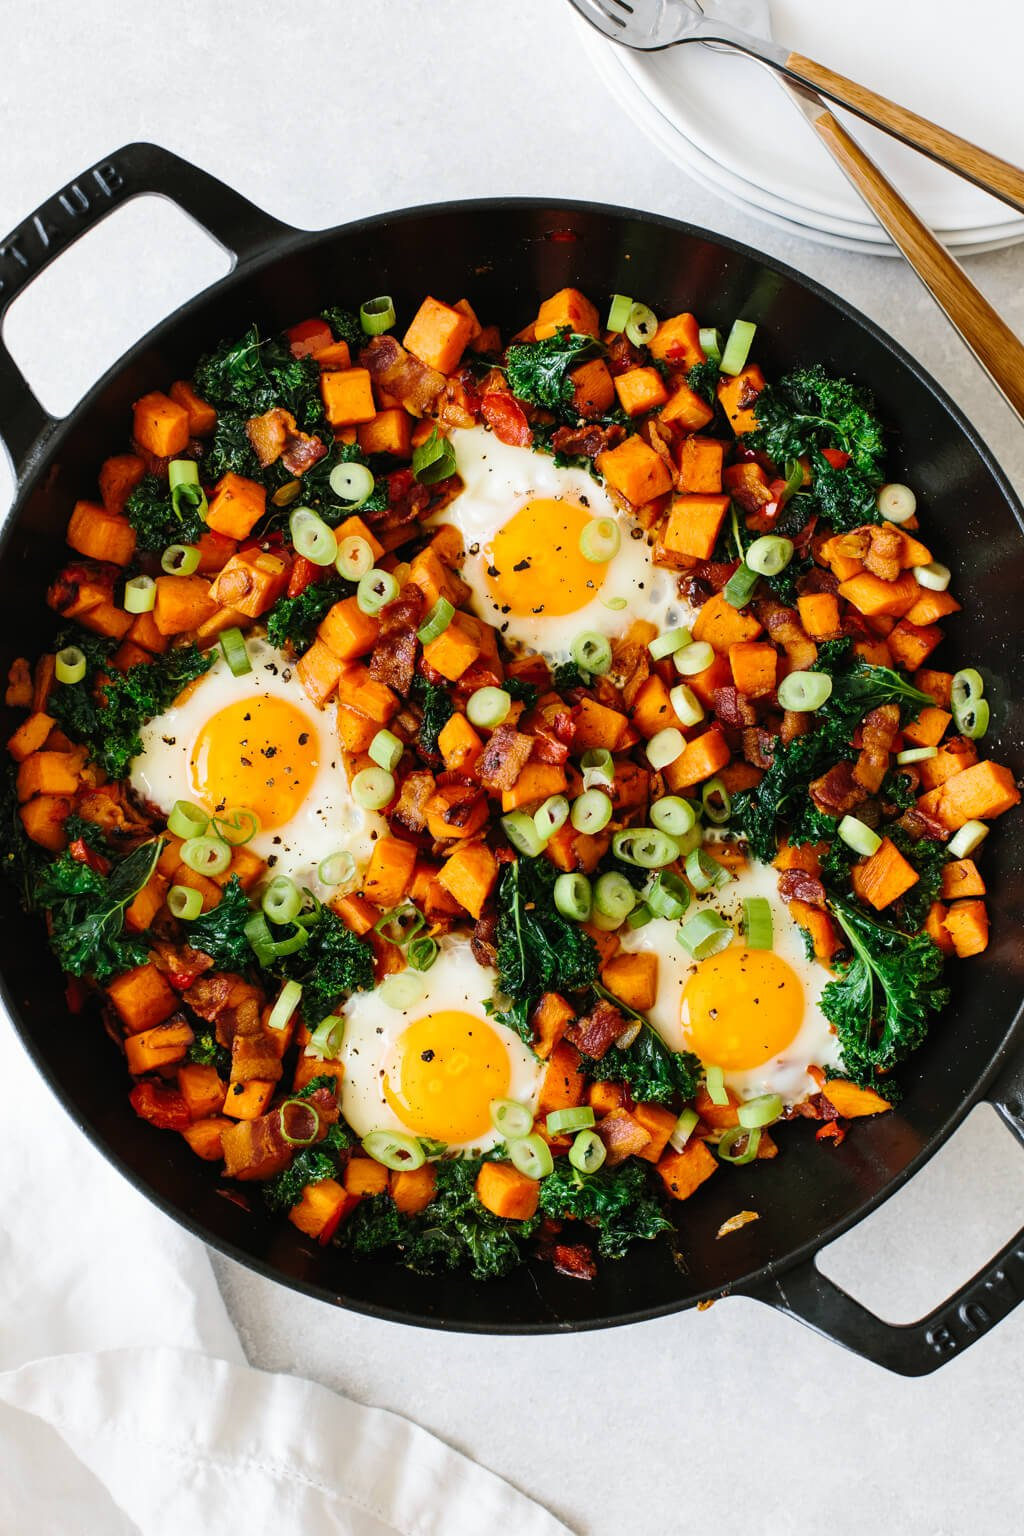 Cubed sweet potato and vegetables in a skillet with eggs.